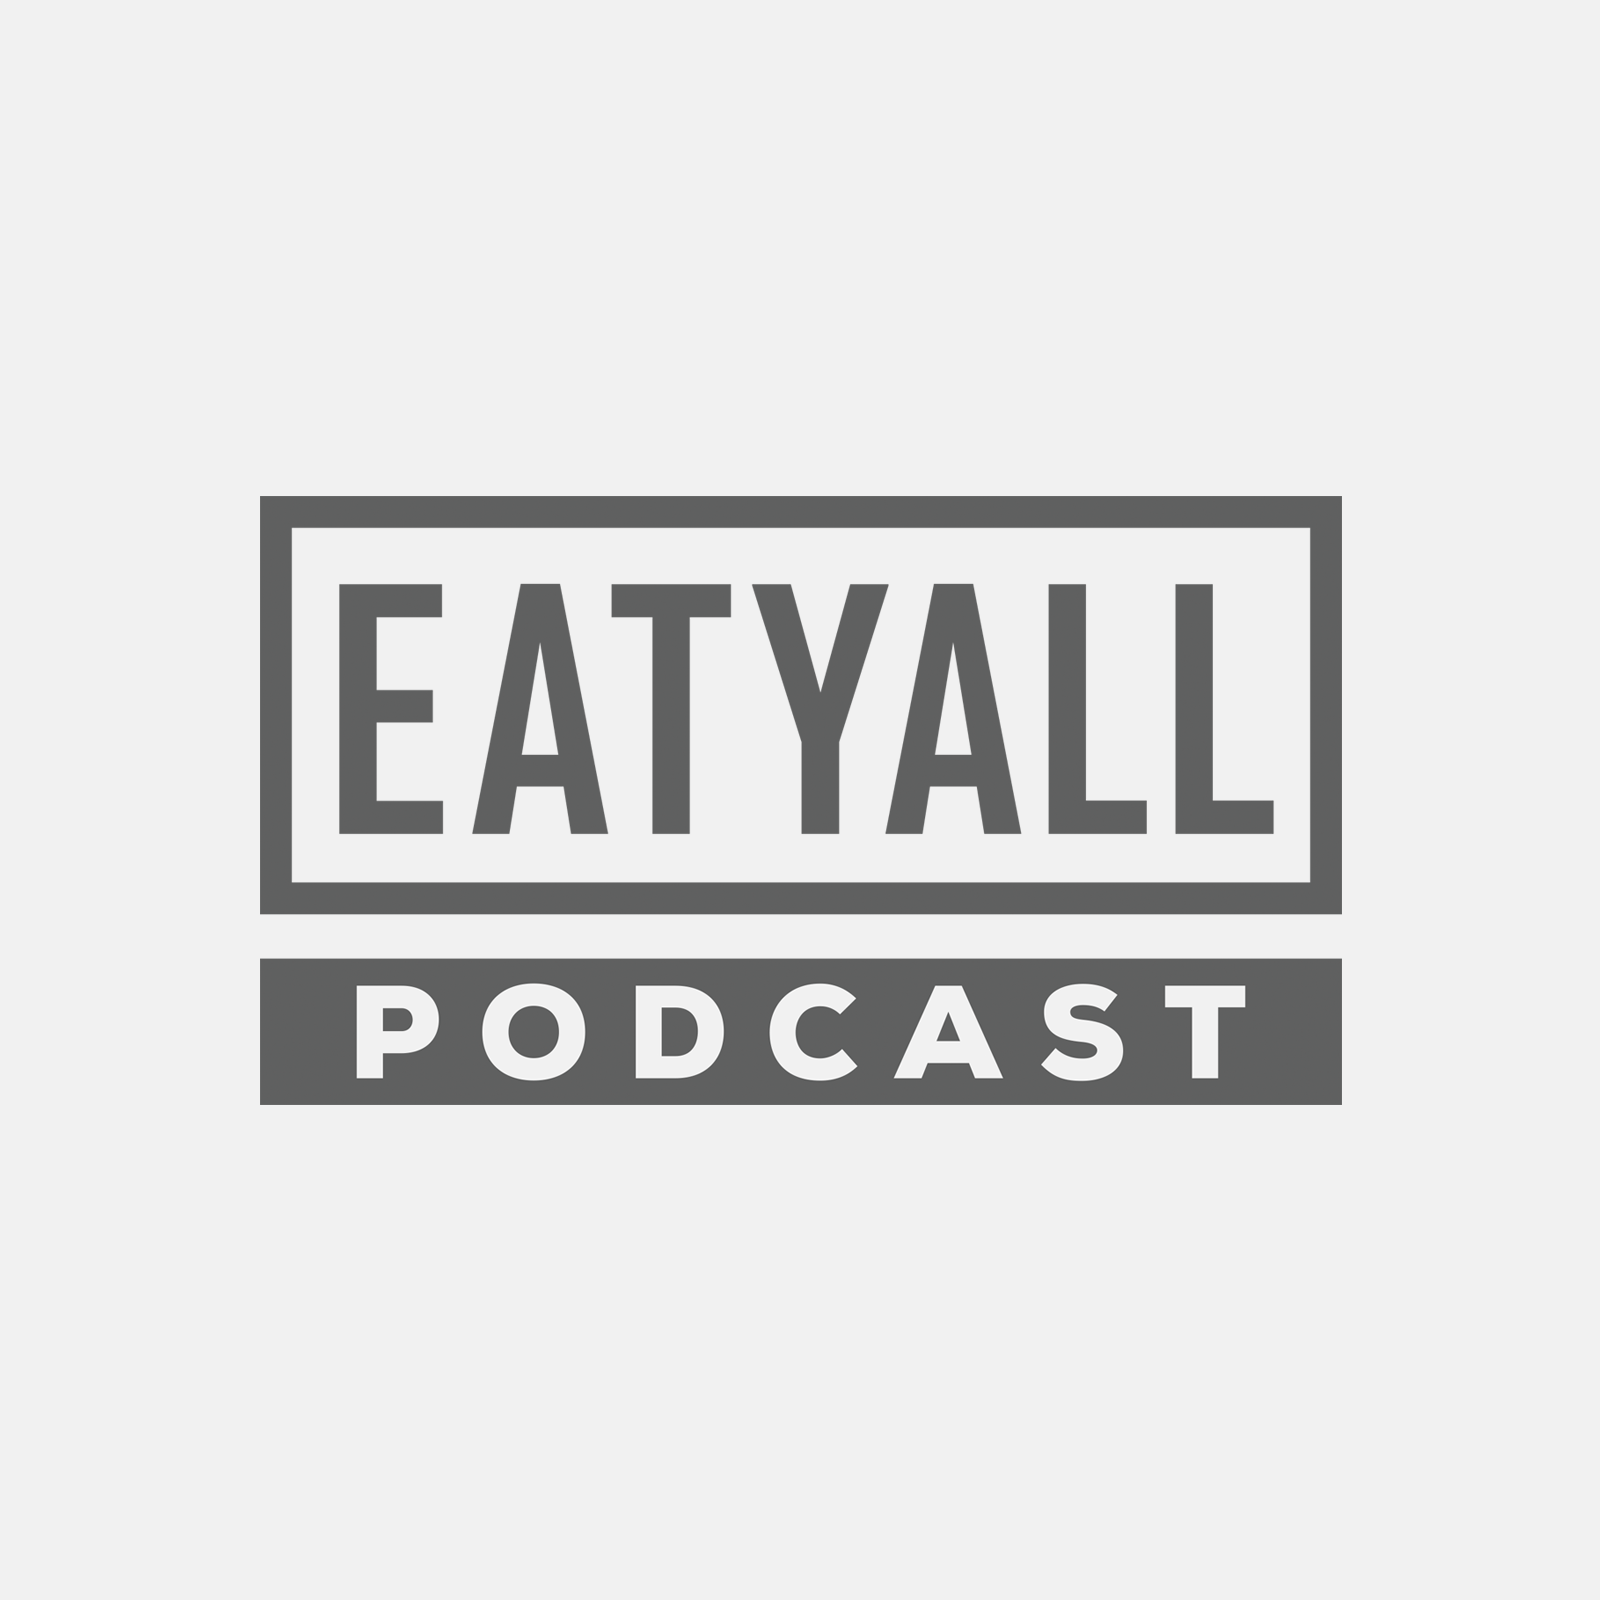 EATYALL: Chefs Go Behind the Scenes at Farms, hosted by Andy Chapman show art